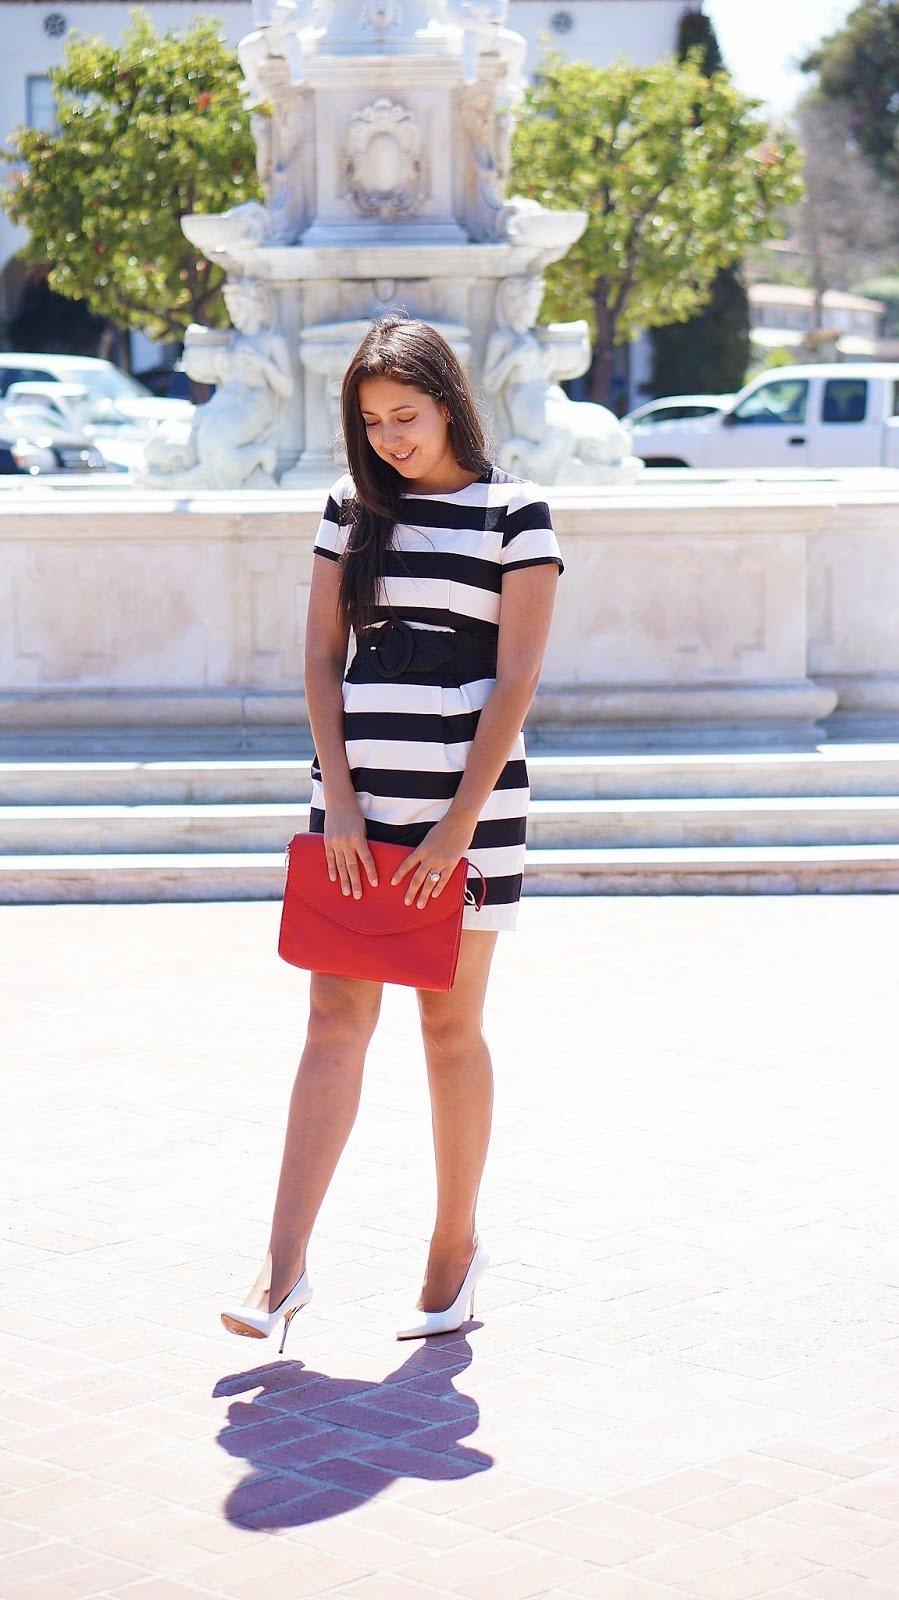 Khloe Kardashian's Look for Less, Khloe Kardashian's Striped Two Piece Outfit, H&M Striped Dress, White Pumps, Fashion Blogger, Celebrity Look For Less